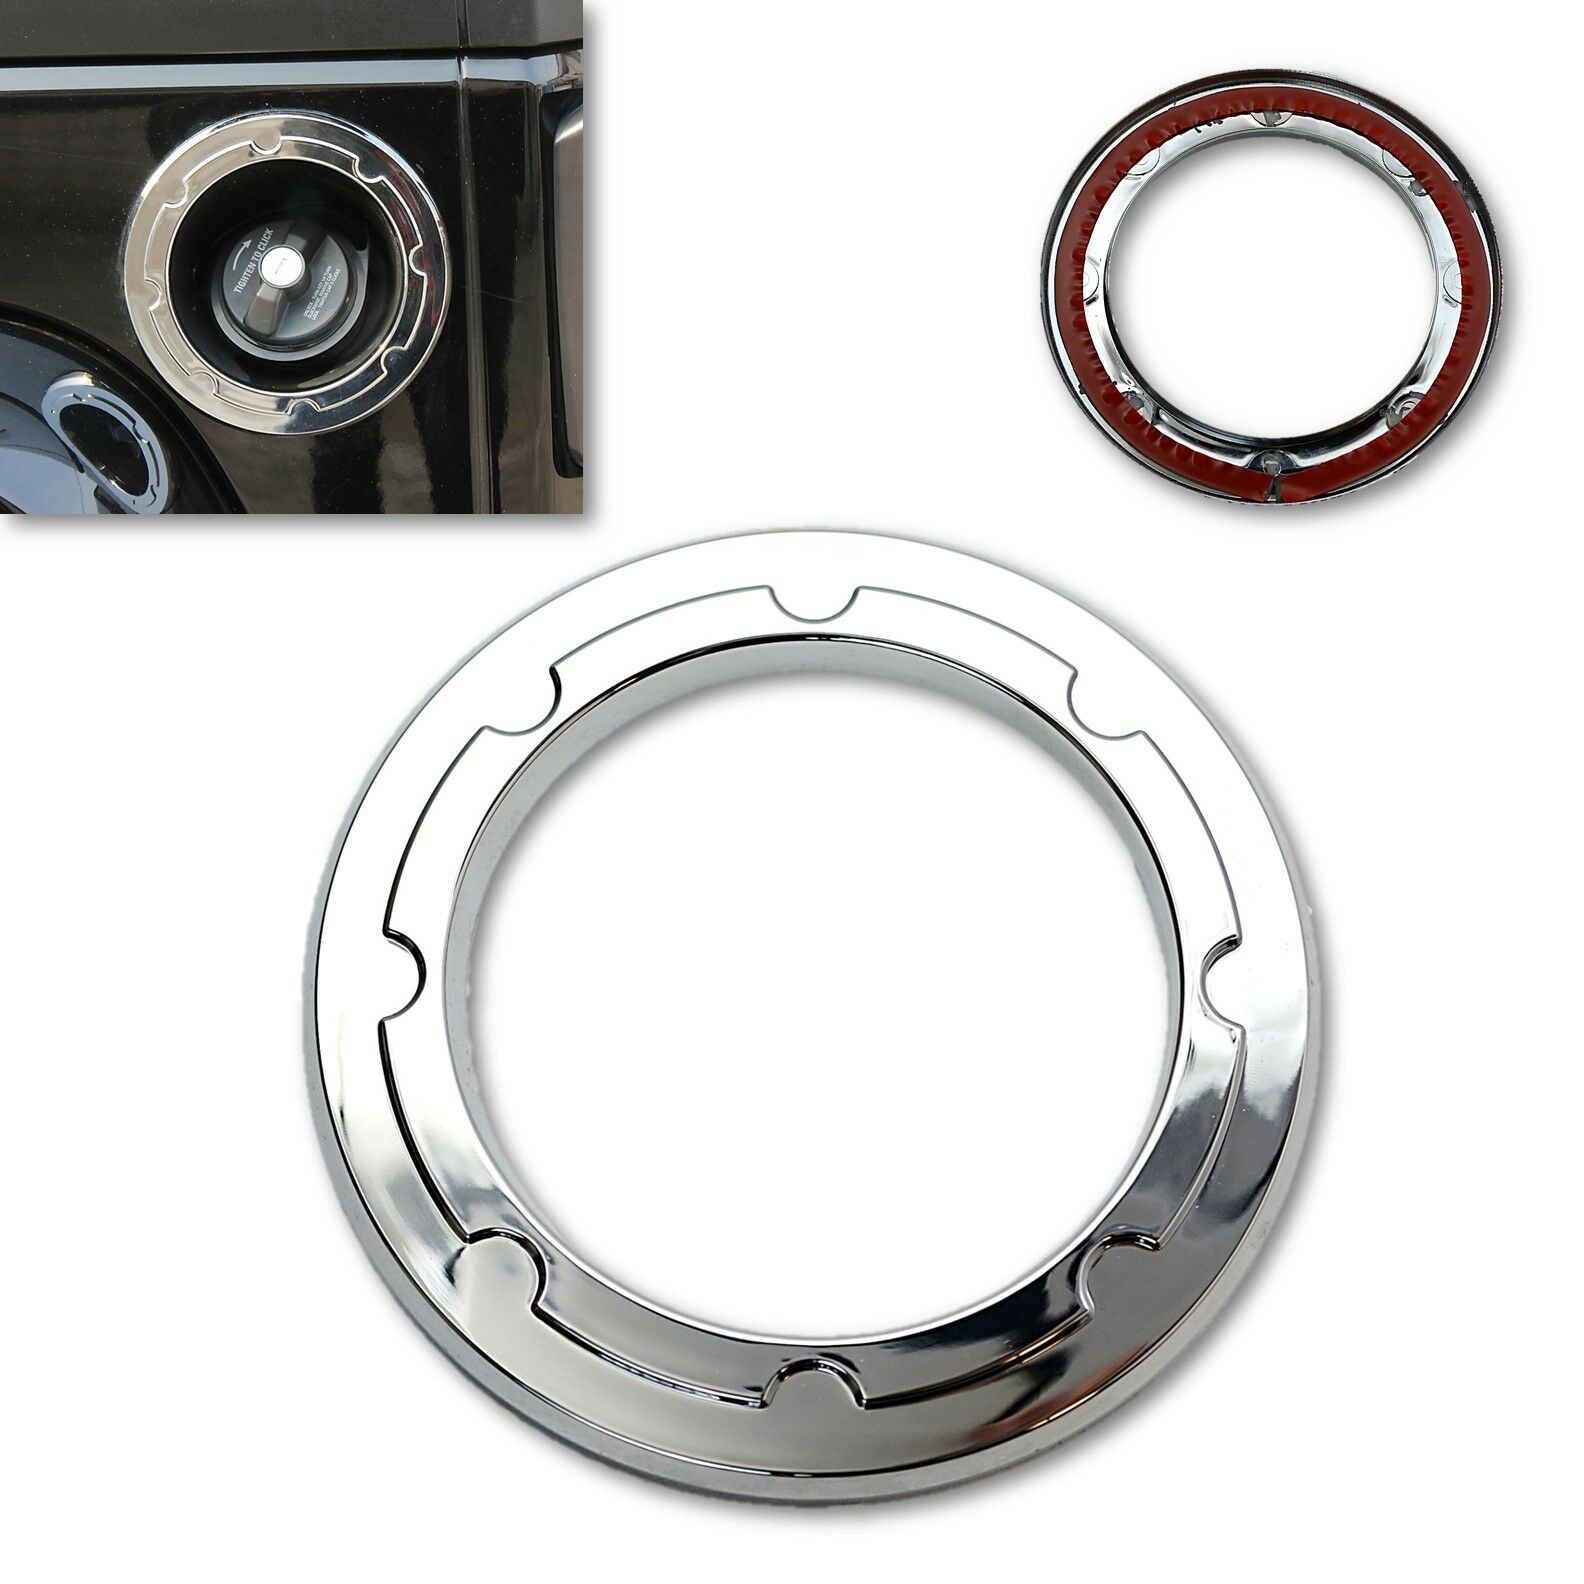 2/4 Door Chrome Filler Tank Gas Cap Door Trim Ring For 2007-2017 Jeep Wrangler